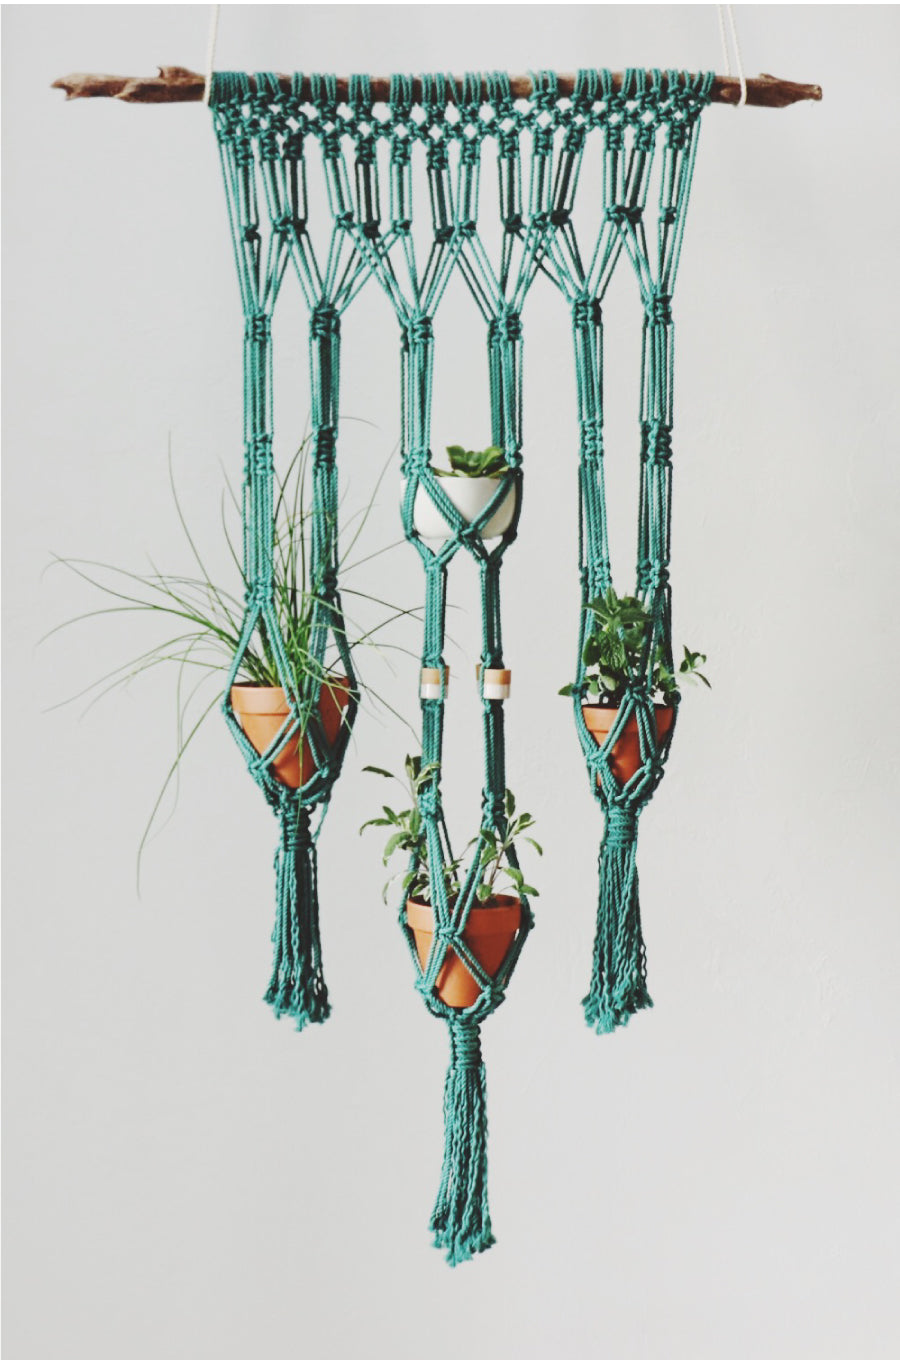 Want to learn to make this beautiful macrame plant hanger garden? We have all you need.